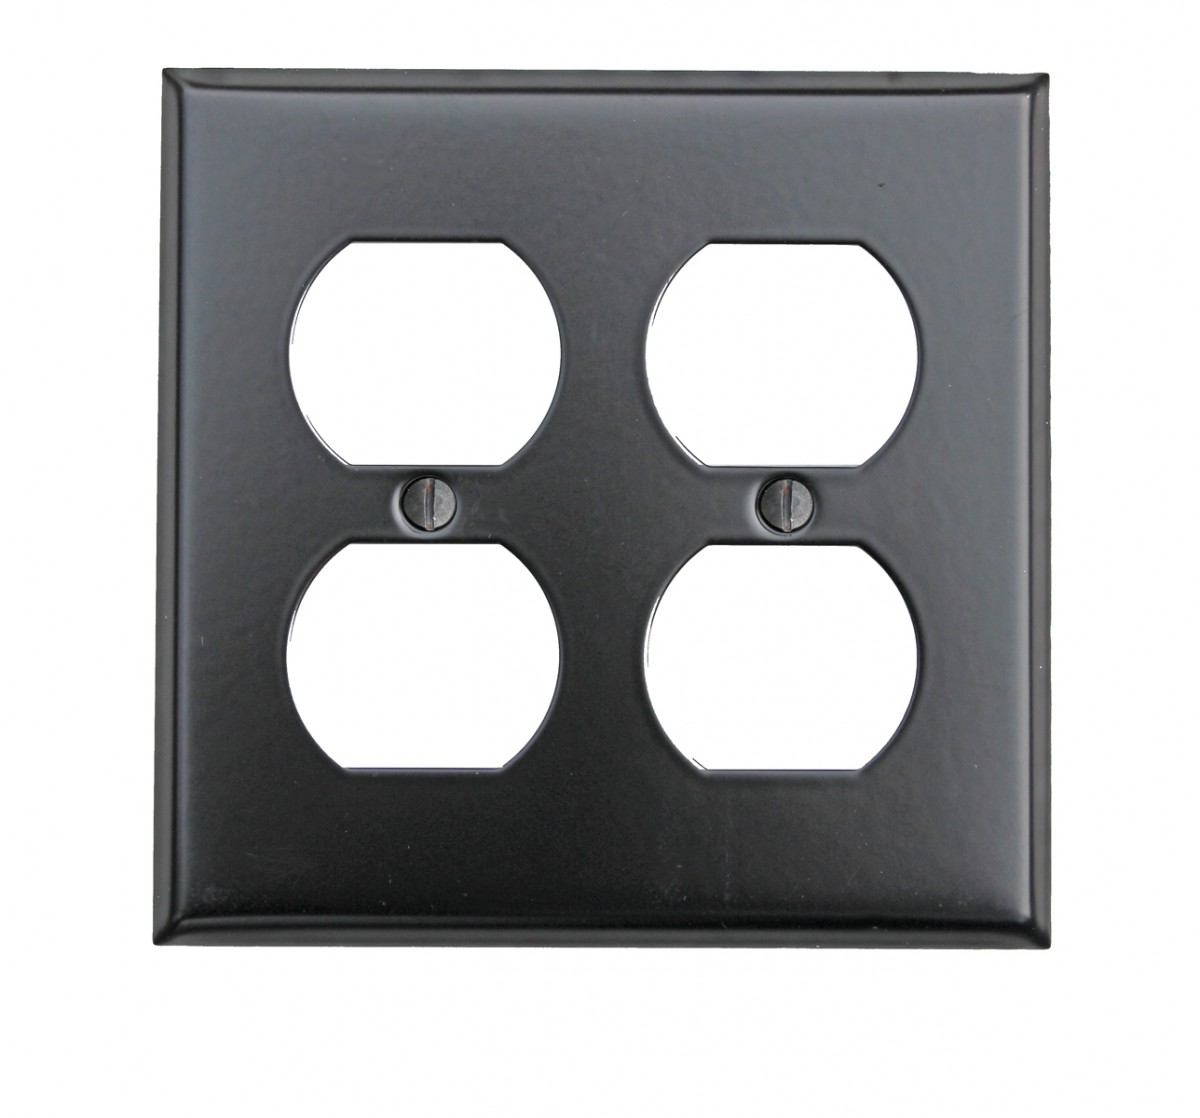 Switchplate Black Steel Double Outlet | Renovator's Supply